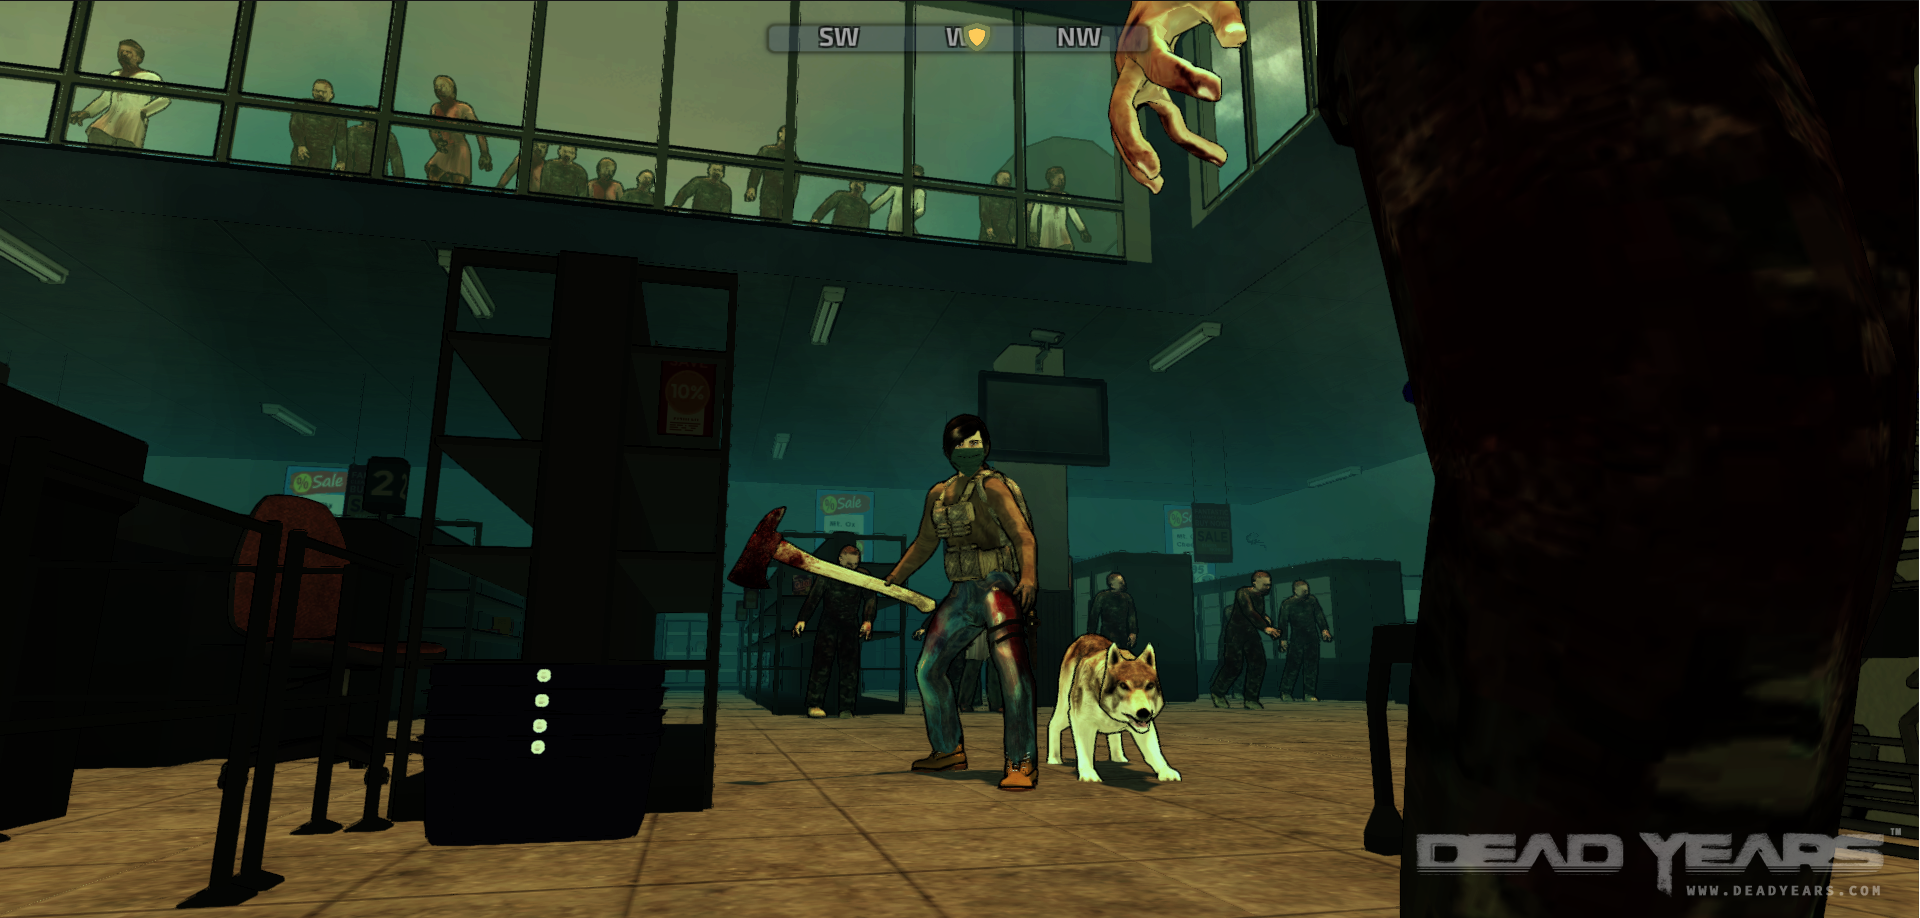 Dead Years screenshot